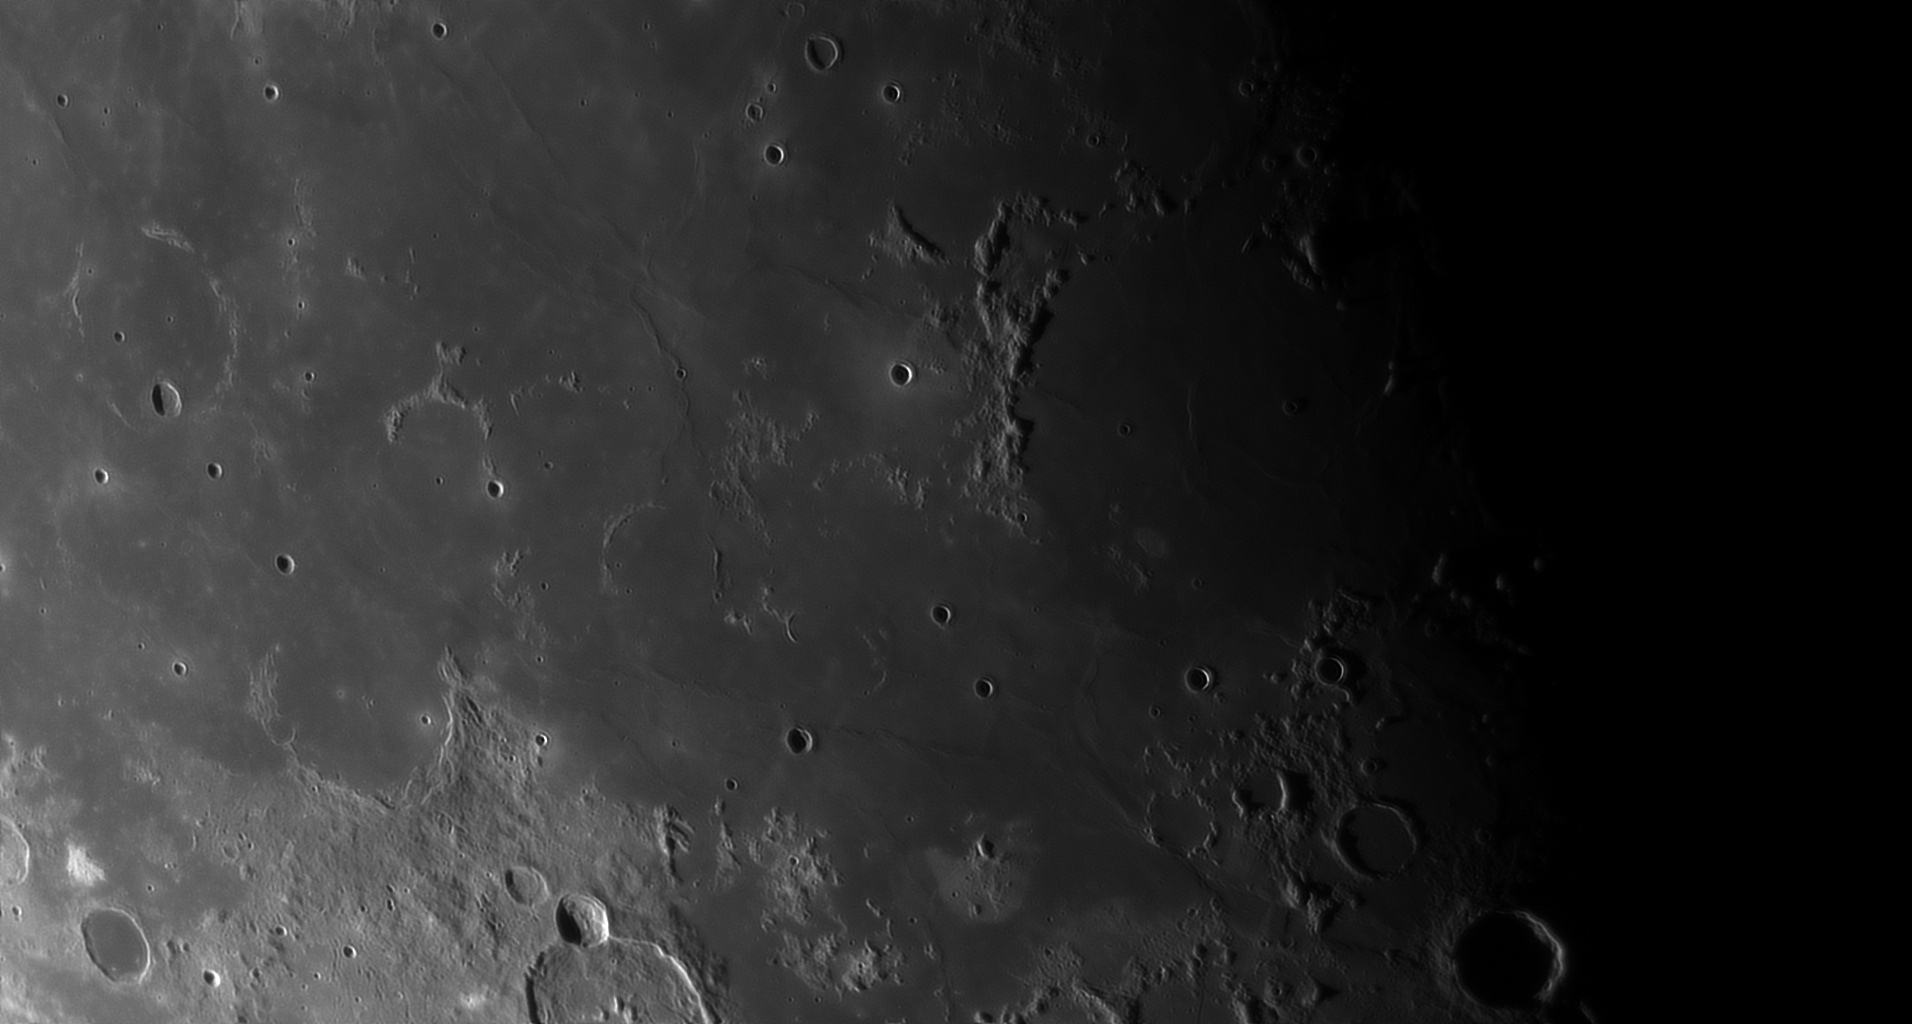 5d97a6697c2bf_Moon_055744_230919_ZWOASI290MM_Rouge_23A_AS_P40_lapl4_ap332.jpg.2d8503818c7027159ab09d6942893203.jpg